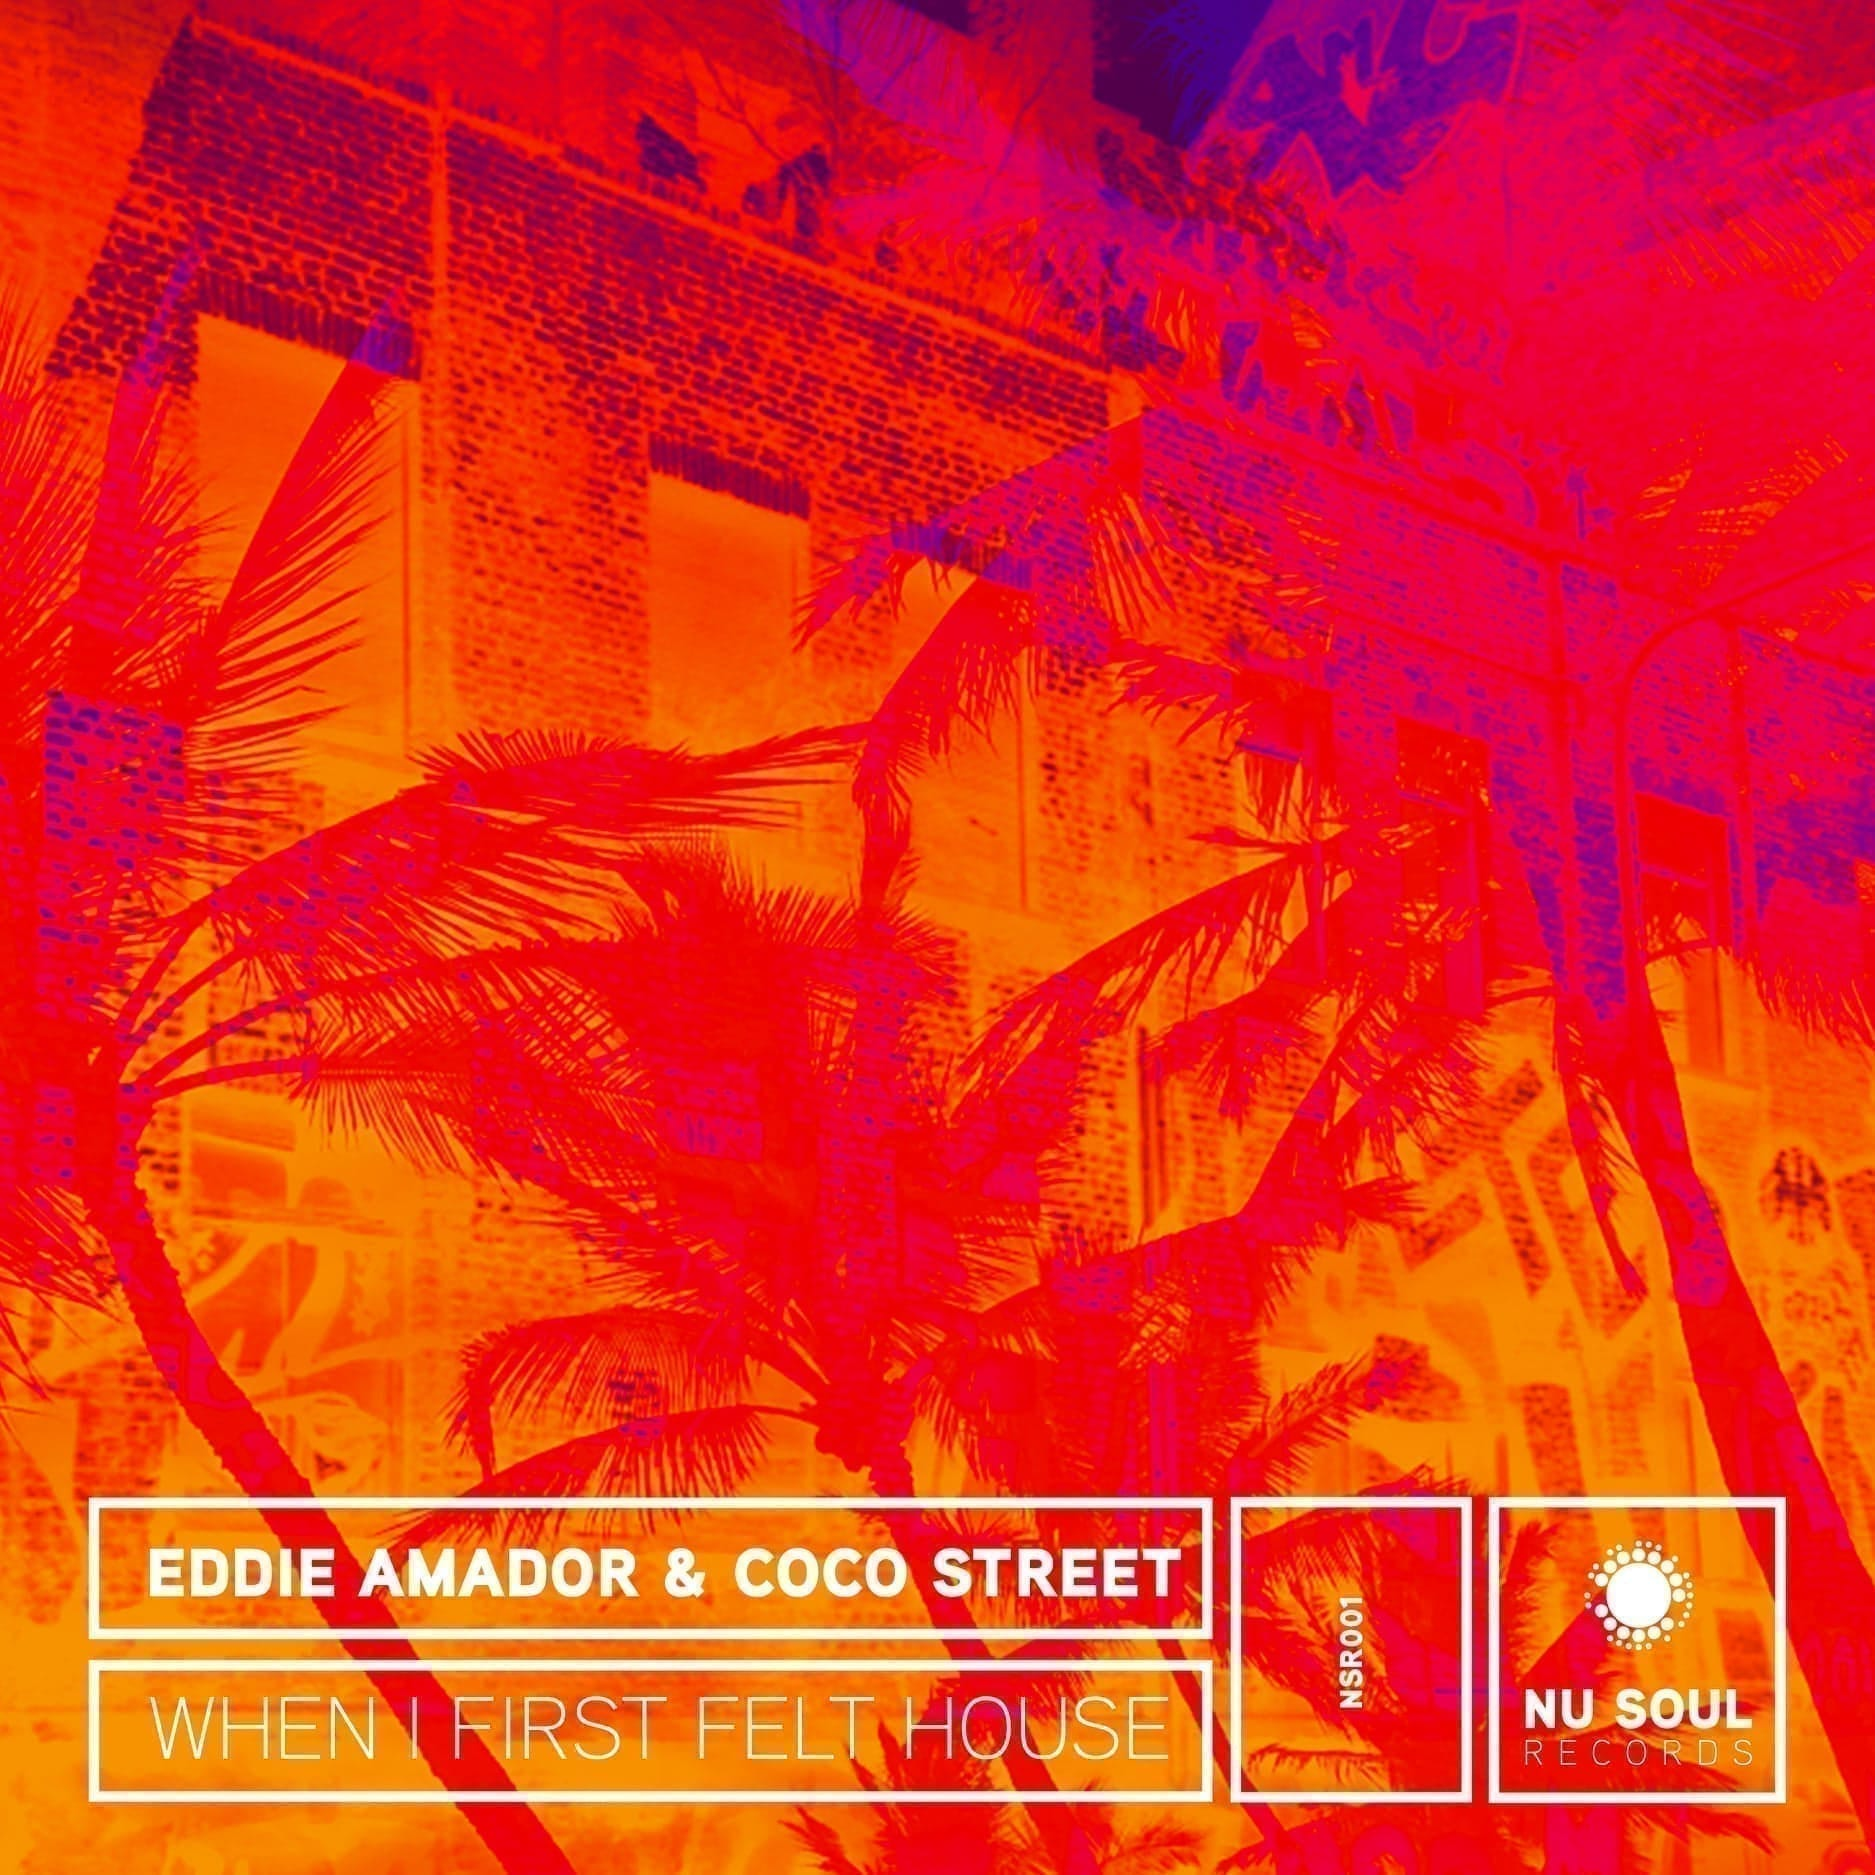 Eddie Amador & Coco Street 'When I First Felt House' NuSoul Records